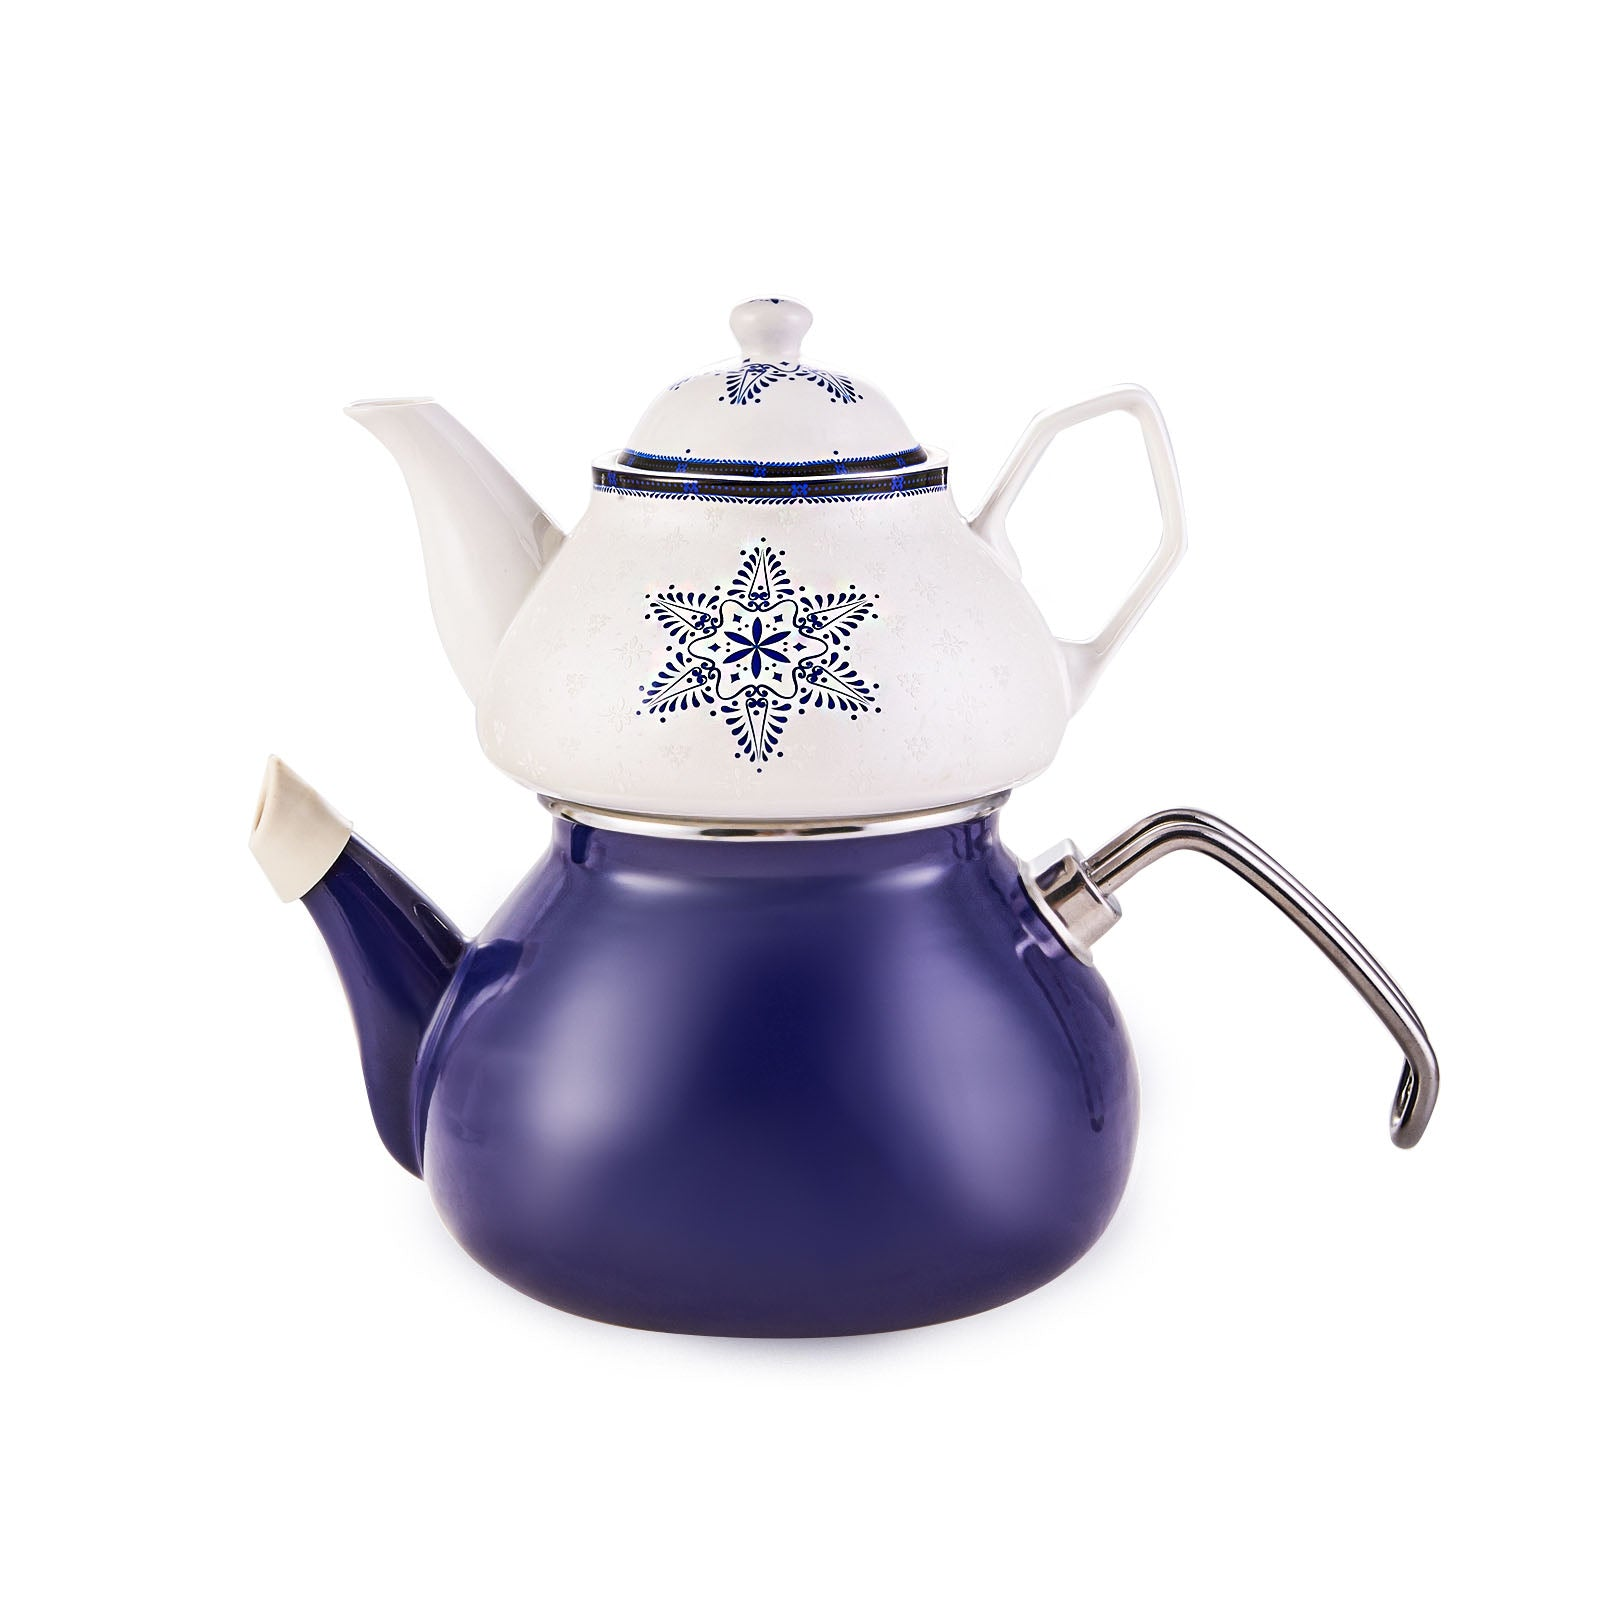 Karaca Queen Star Teapot Set with Porcelain Teapot 153.03.07.9625 - ebarza